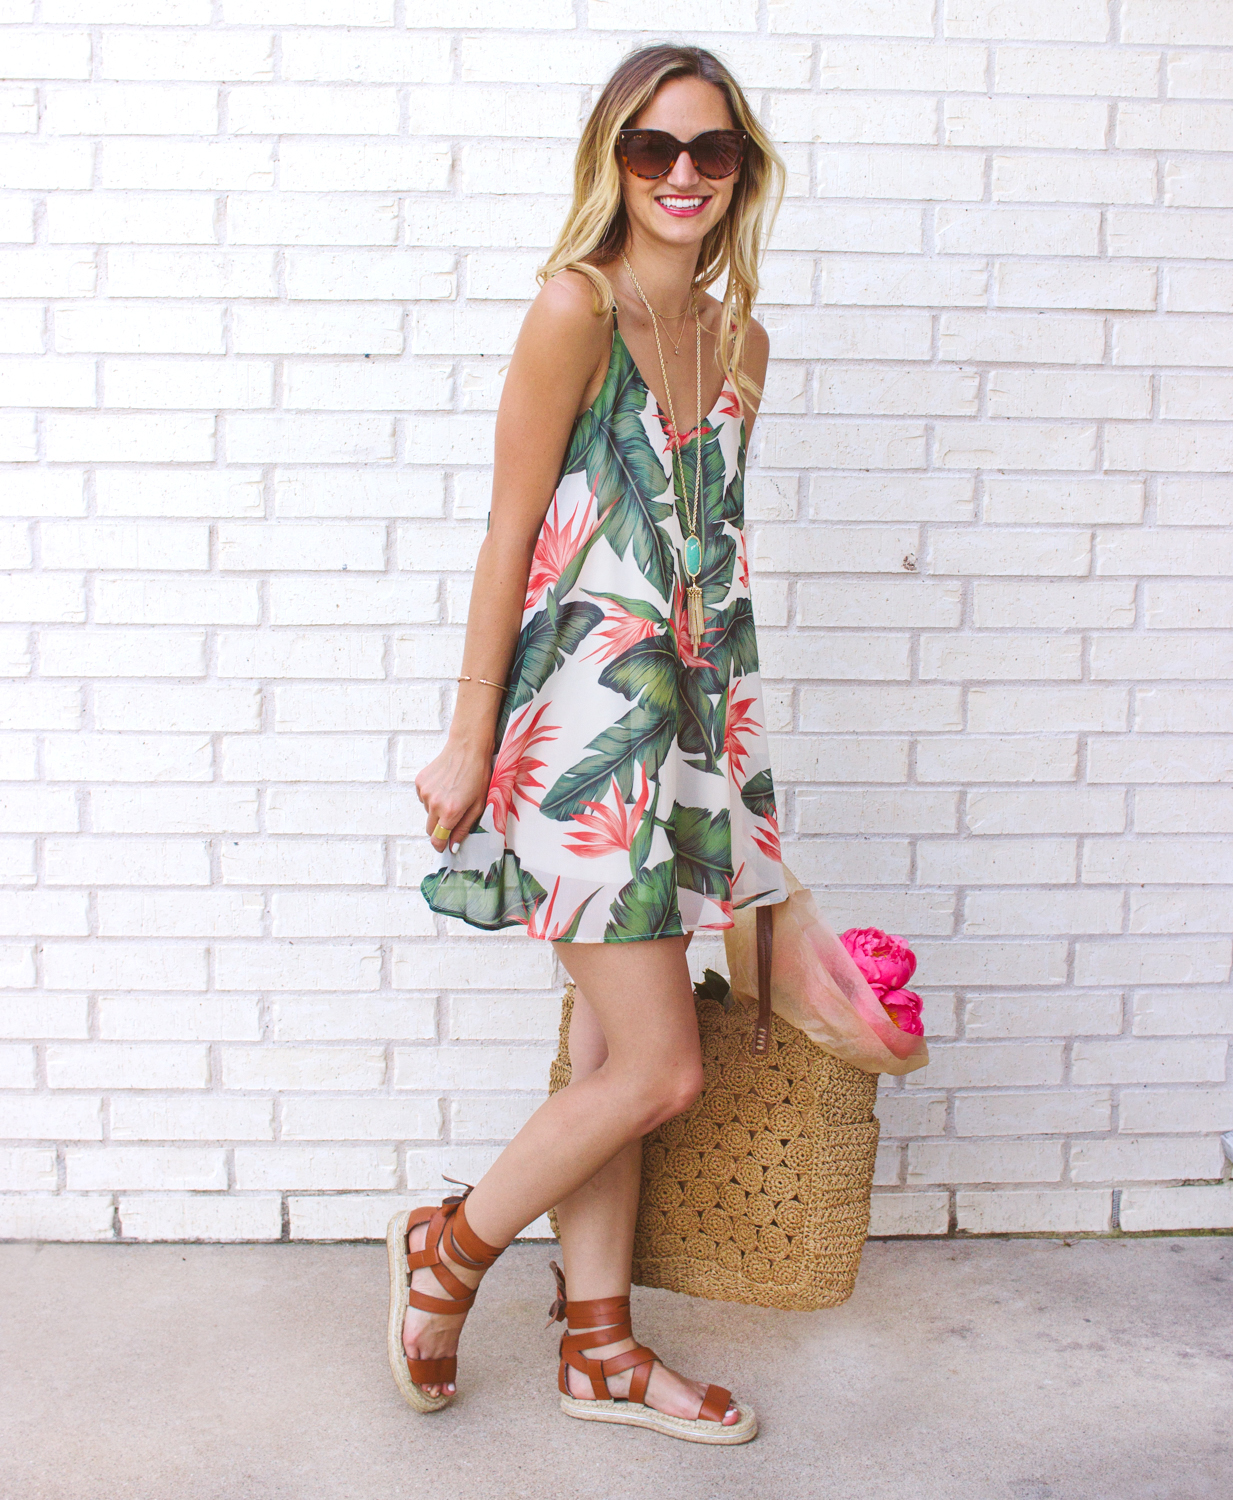 Summer Ready Livvyland Austin Fashion And Style Blogger